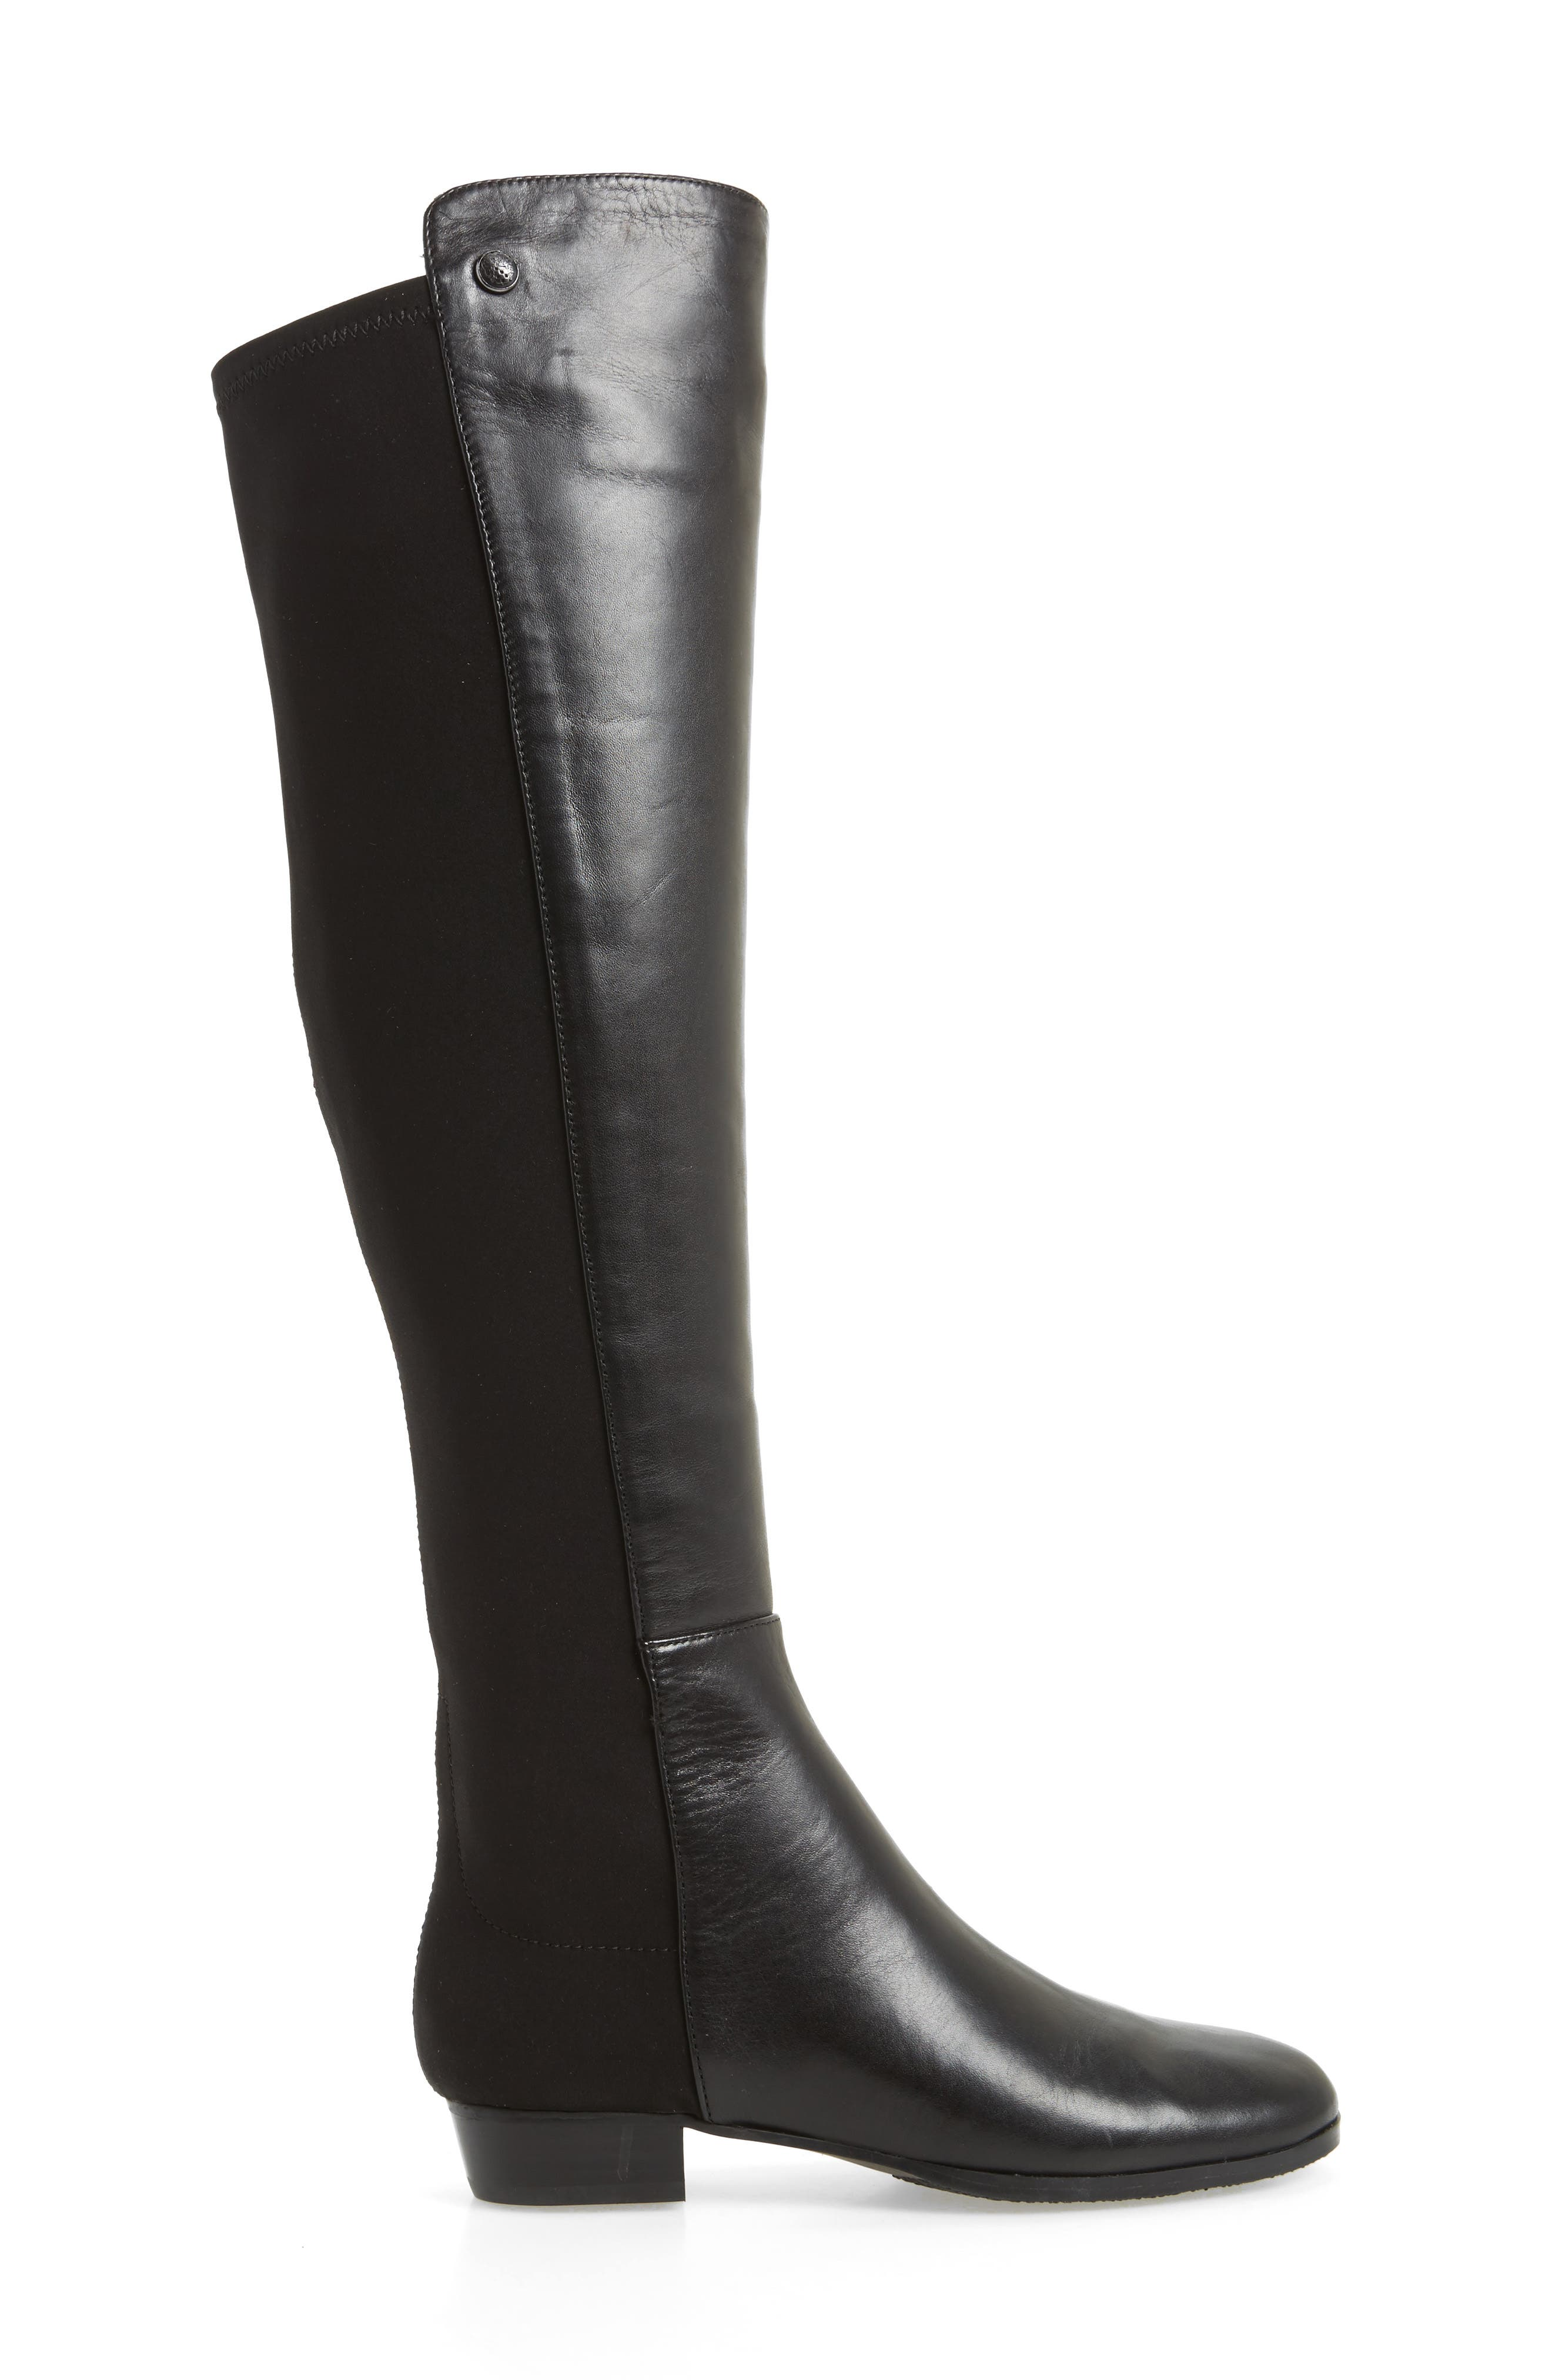 'Karita' Over the Knee Boot,                             Alternate thumbnail 3, color,                             BLACK/ BLACK